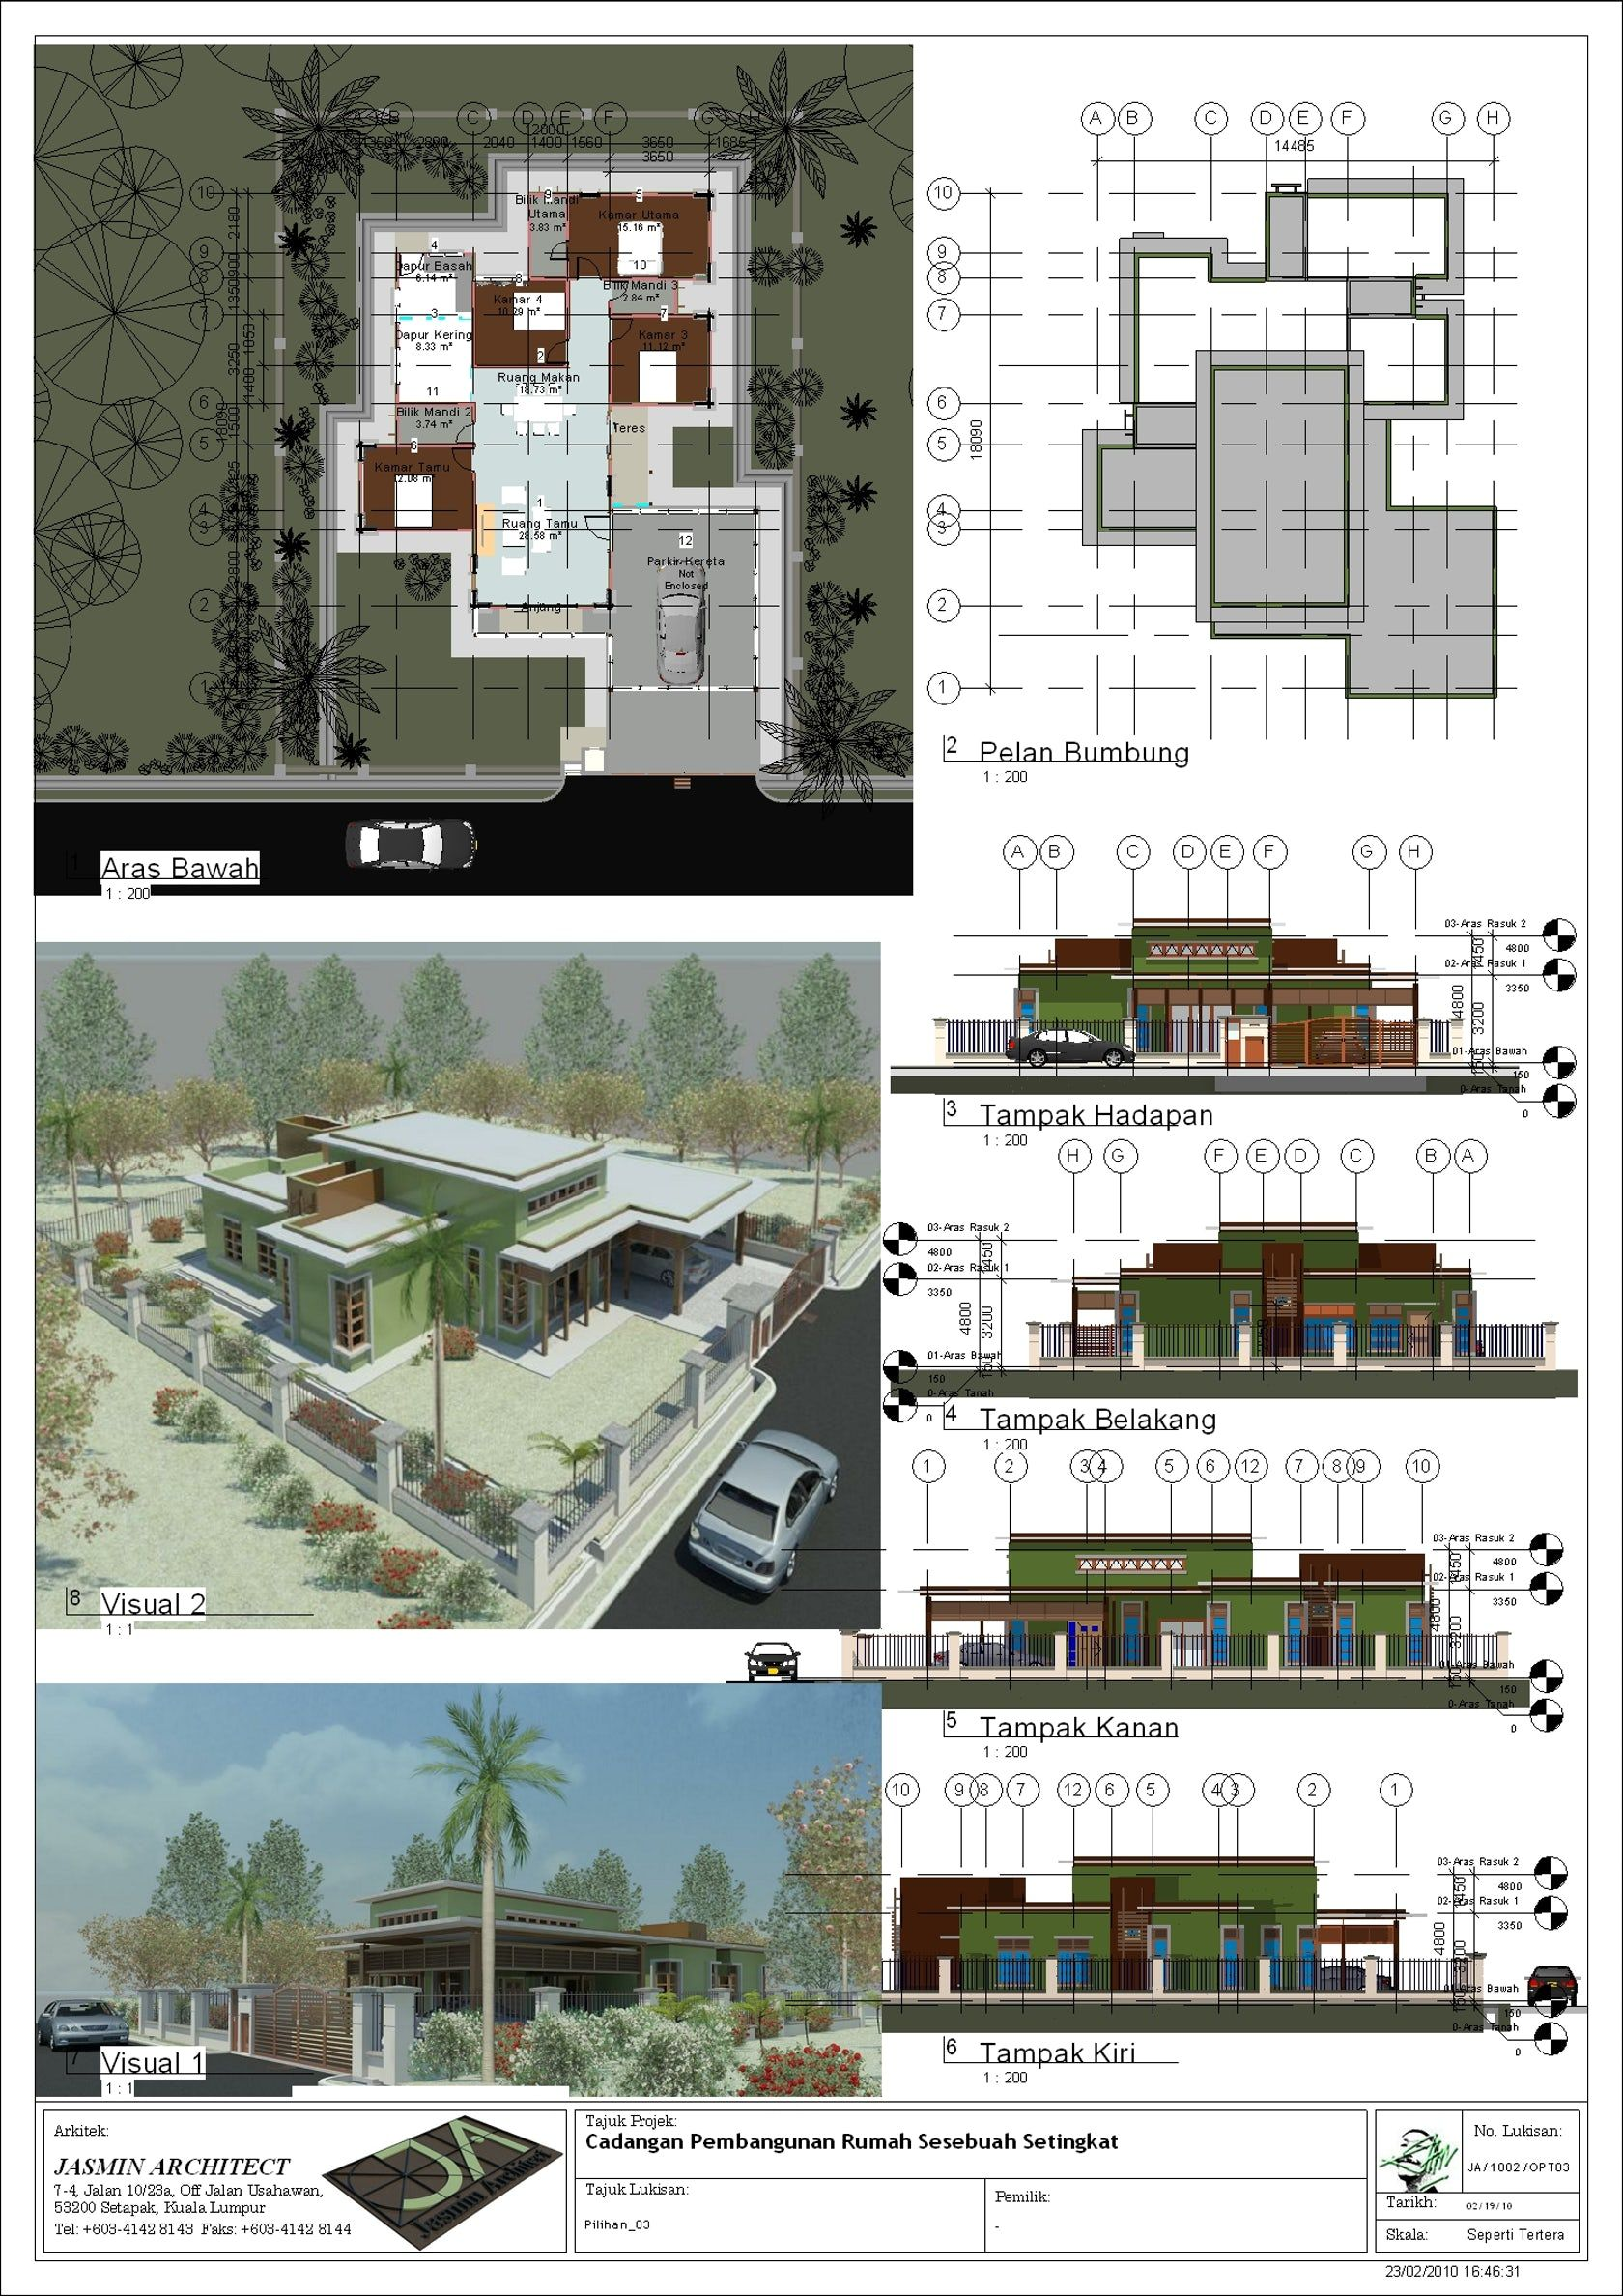 Proposing A Unique Blend Of Simplicity And Practicality To Four Types Of Single Storey Bungalows That Incor Bungalow Design Bungalow House Floor Plans Bungalow